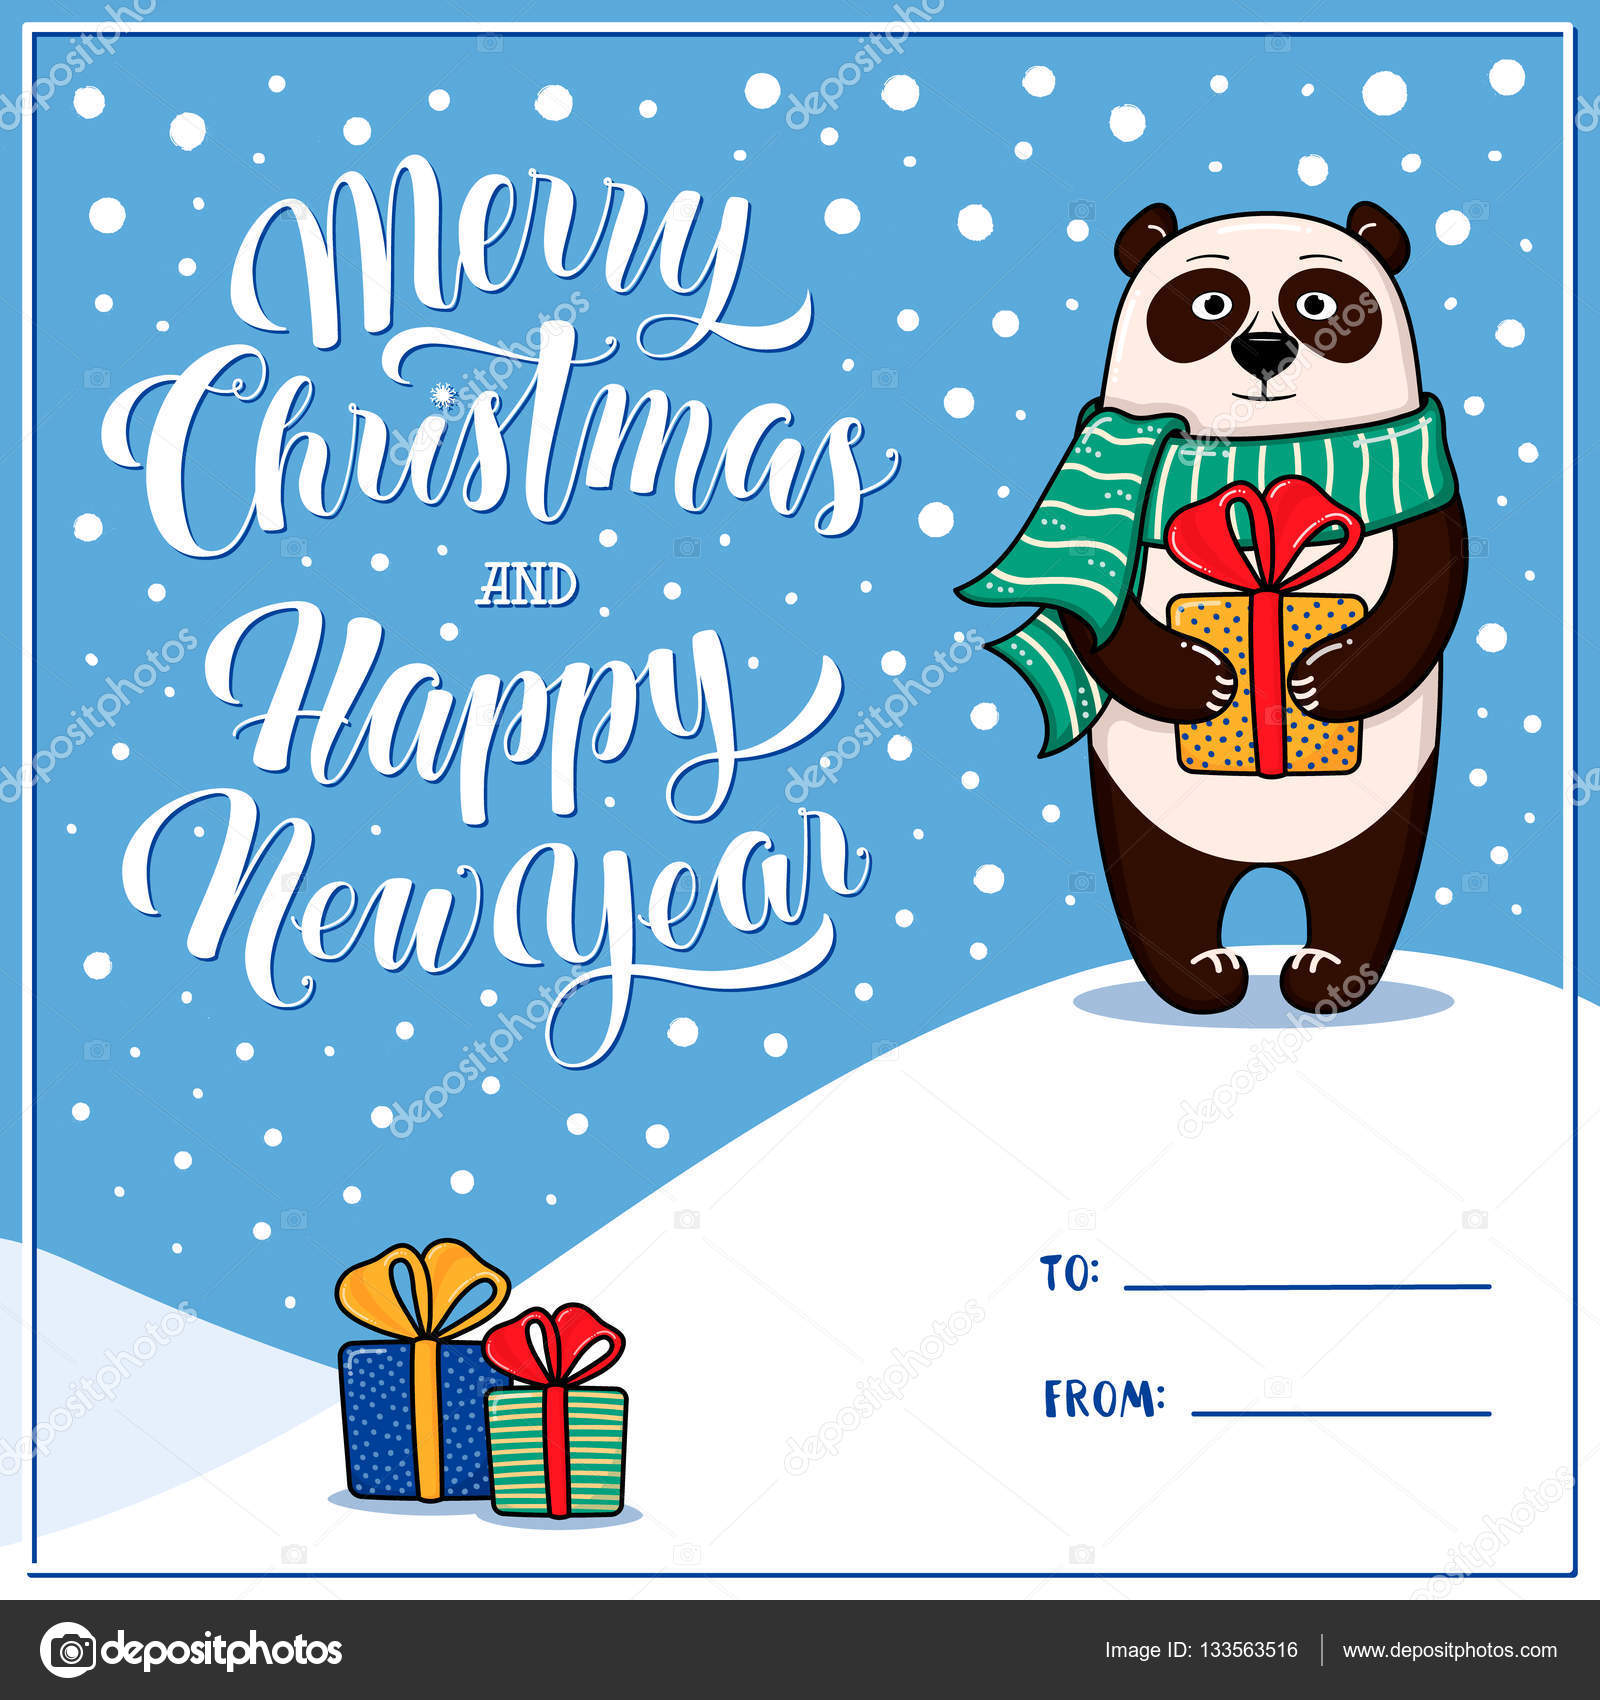 Merry Christmas And Happy New Year Greeting Card With Panda Stock